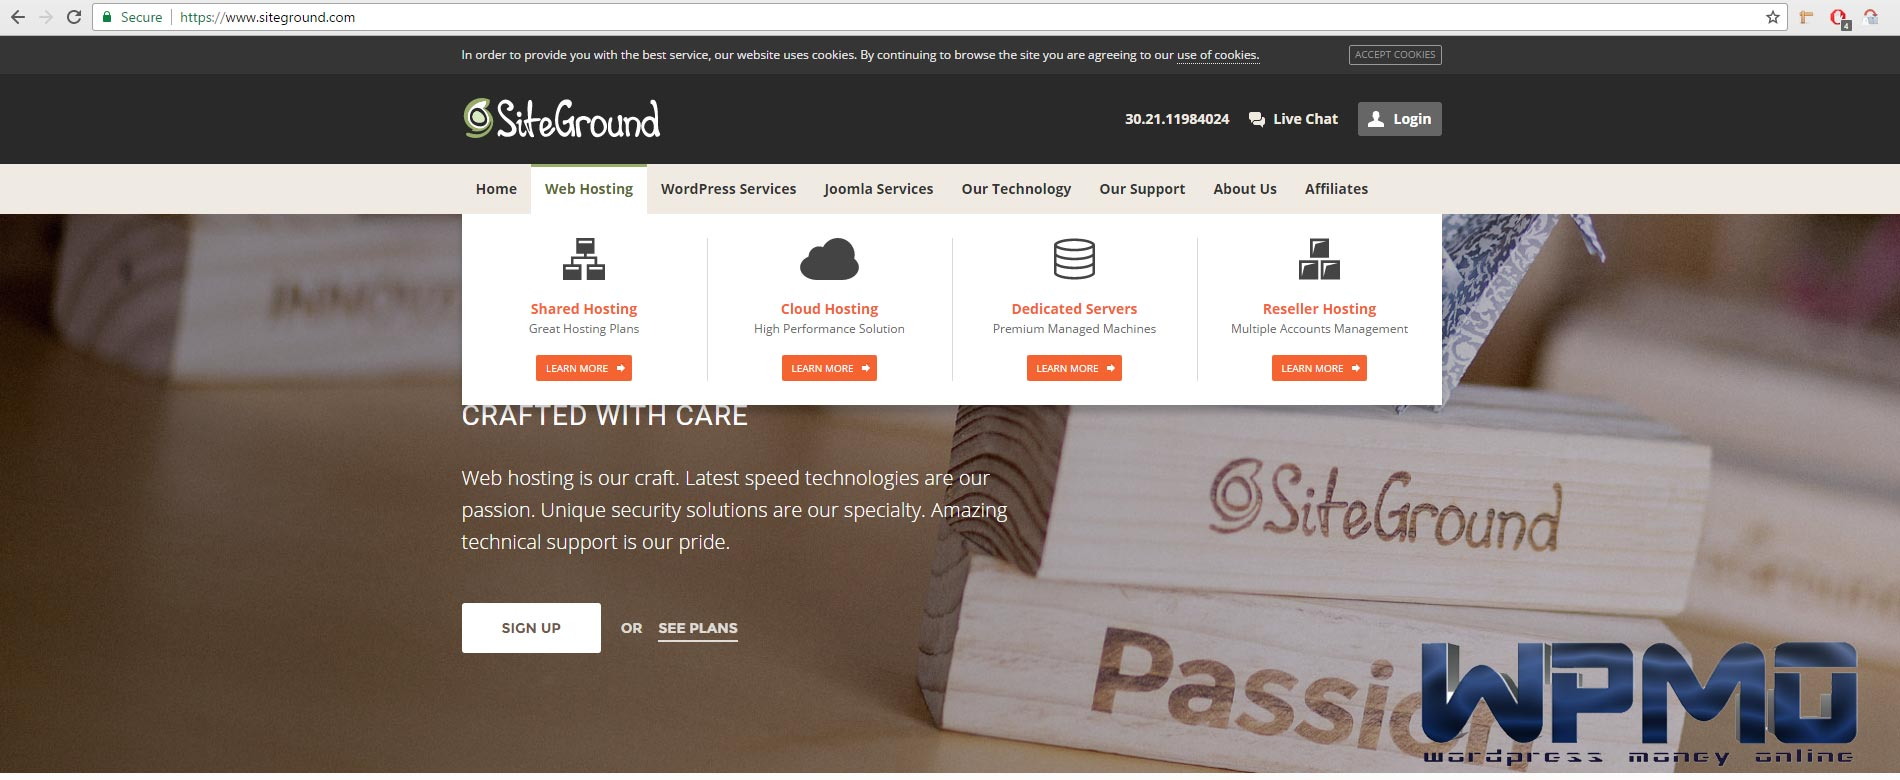 Hover your mouse or navigate to web hosting tab - Create SiteGround Hosting Account